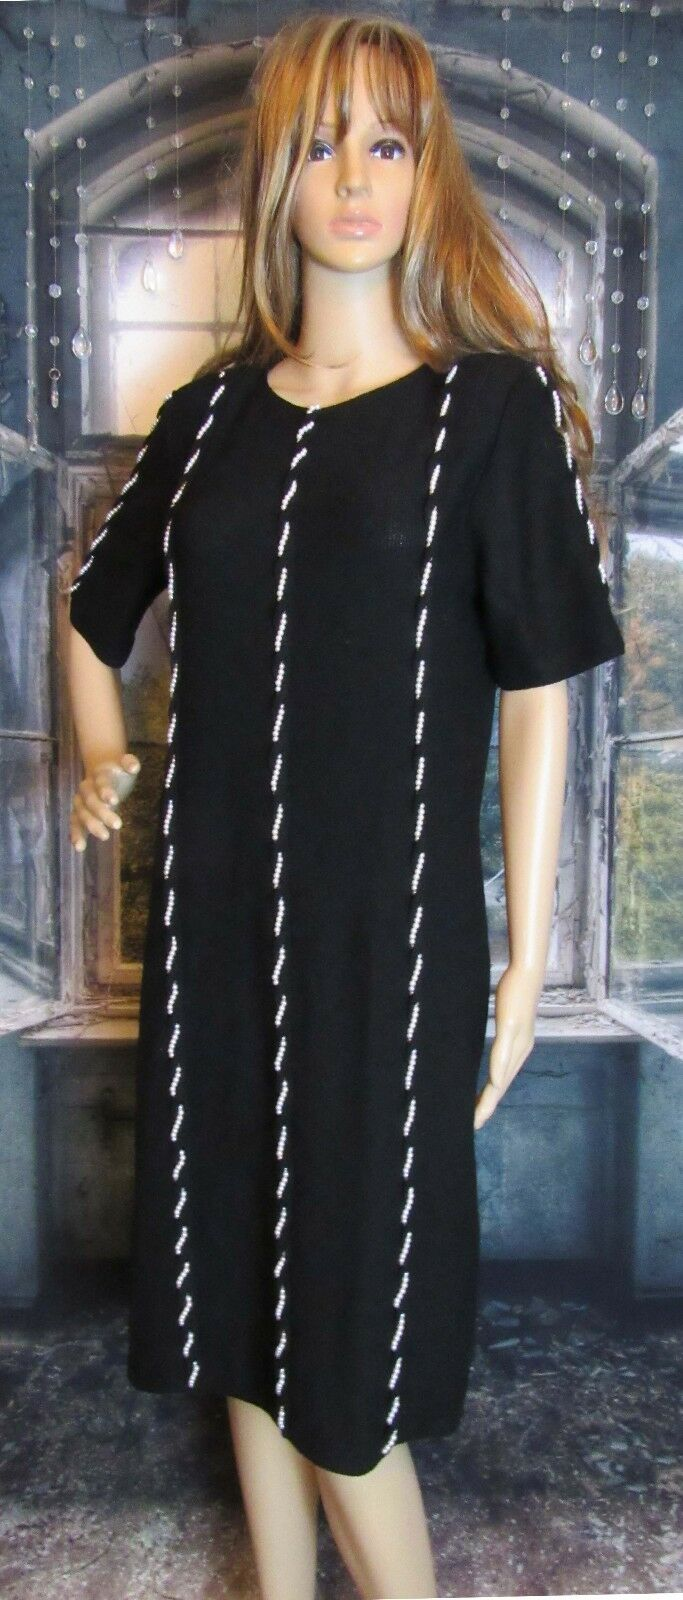 Vintage Steve Fabrikant Neiman Marcus Knit Dress Braided Pearl Embellished Sz SM